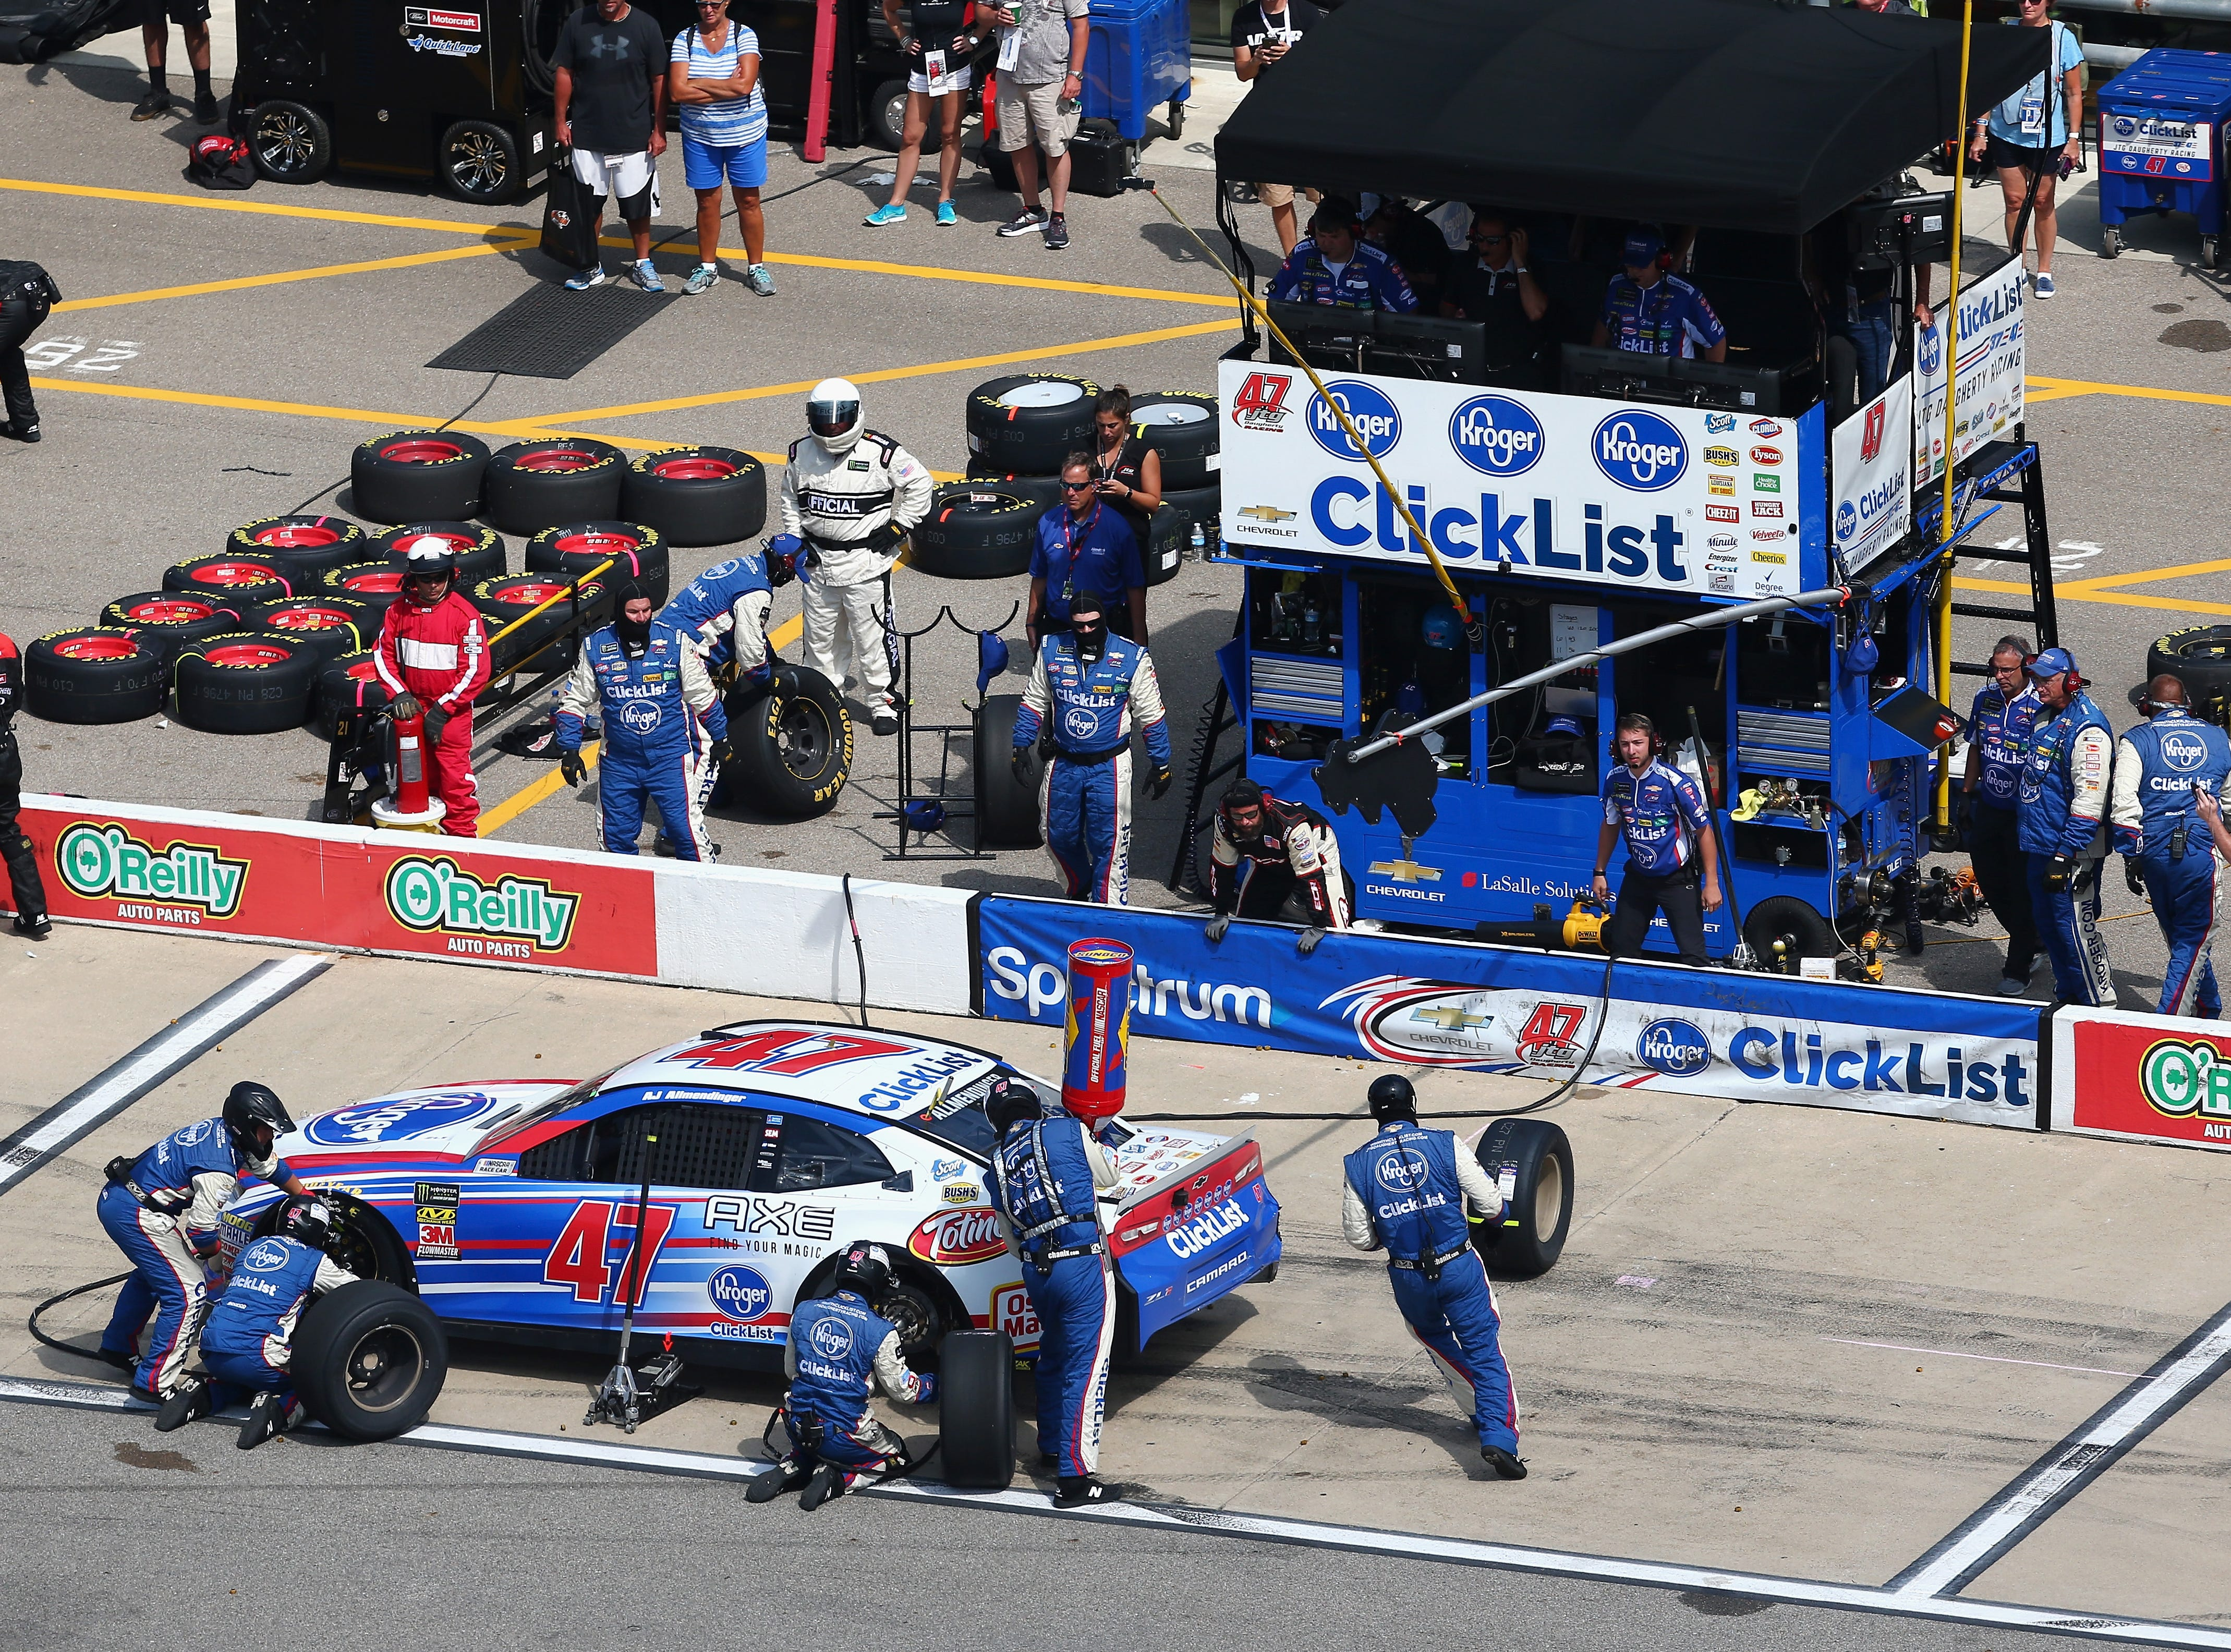 AJ Allmendinger, driver of the No. 47 Kroger ClickList Chevrolet, pits during the Monster Energy NASCAR Cup Series Consmers Energy 400 at Michigan International Speedway on August 12, 2018 in Brooklyn, Michigan.